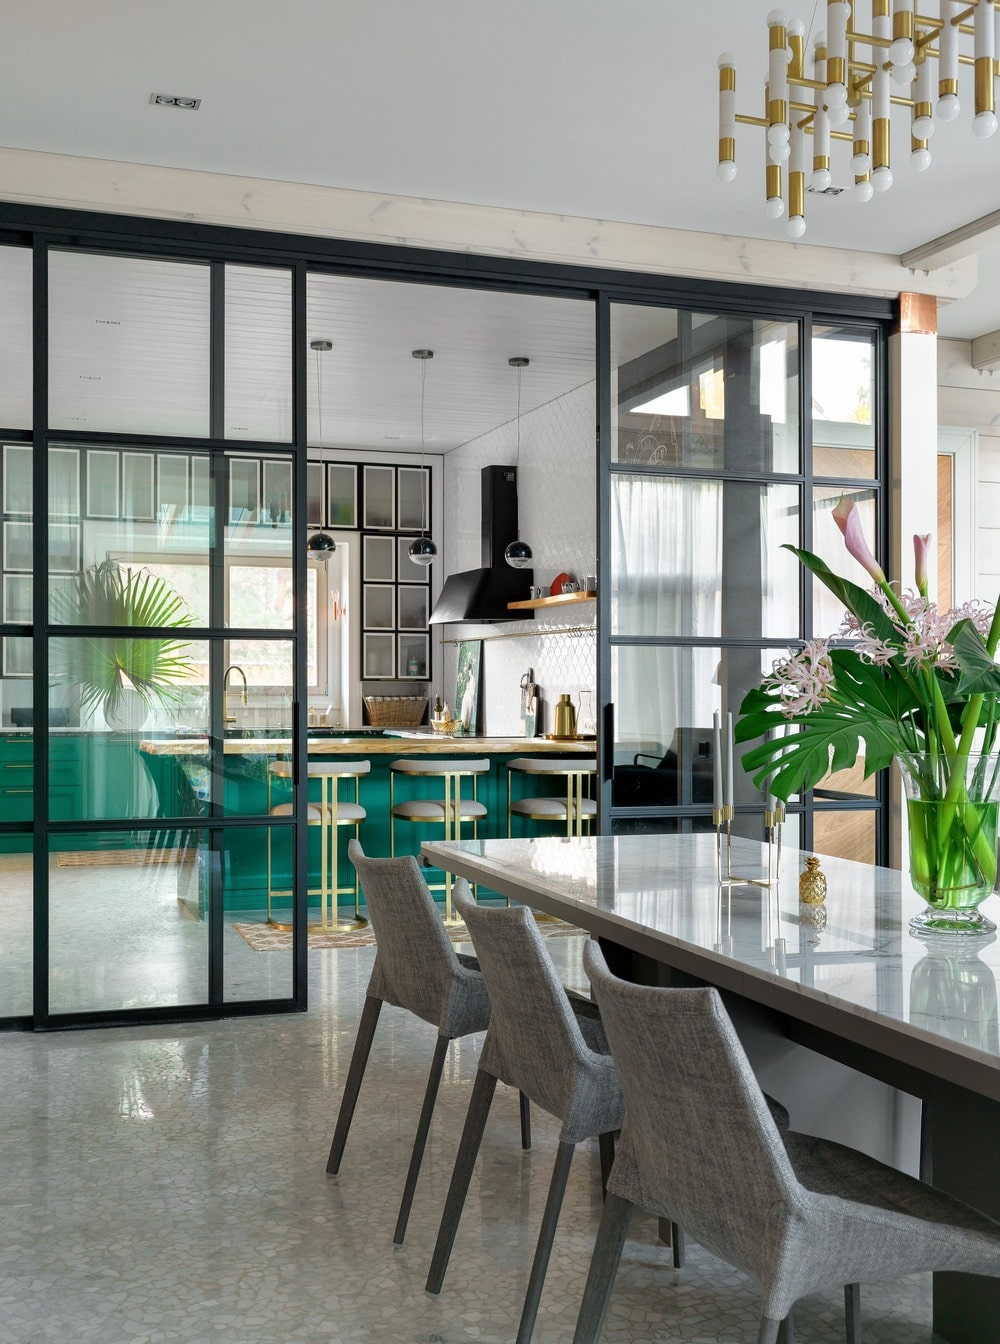 The kitchen is separated from the dining area with a set of floor-to-ceiling French sliding glass doors with black frames to stand out against the walls and flooring.